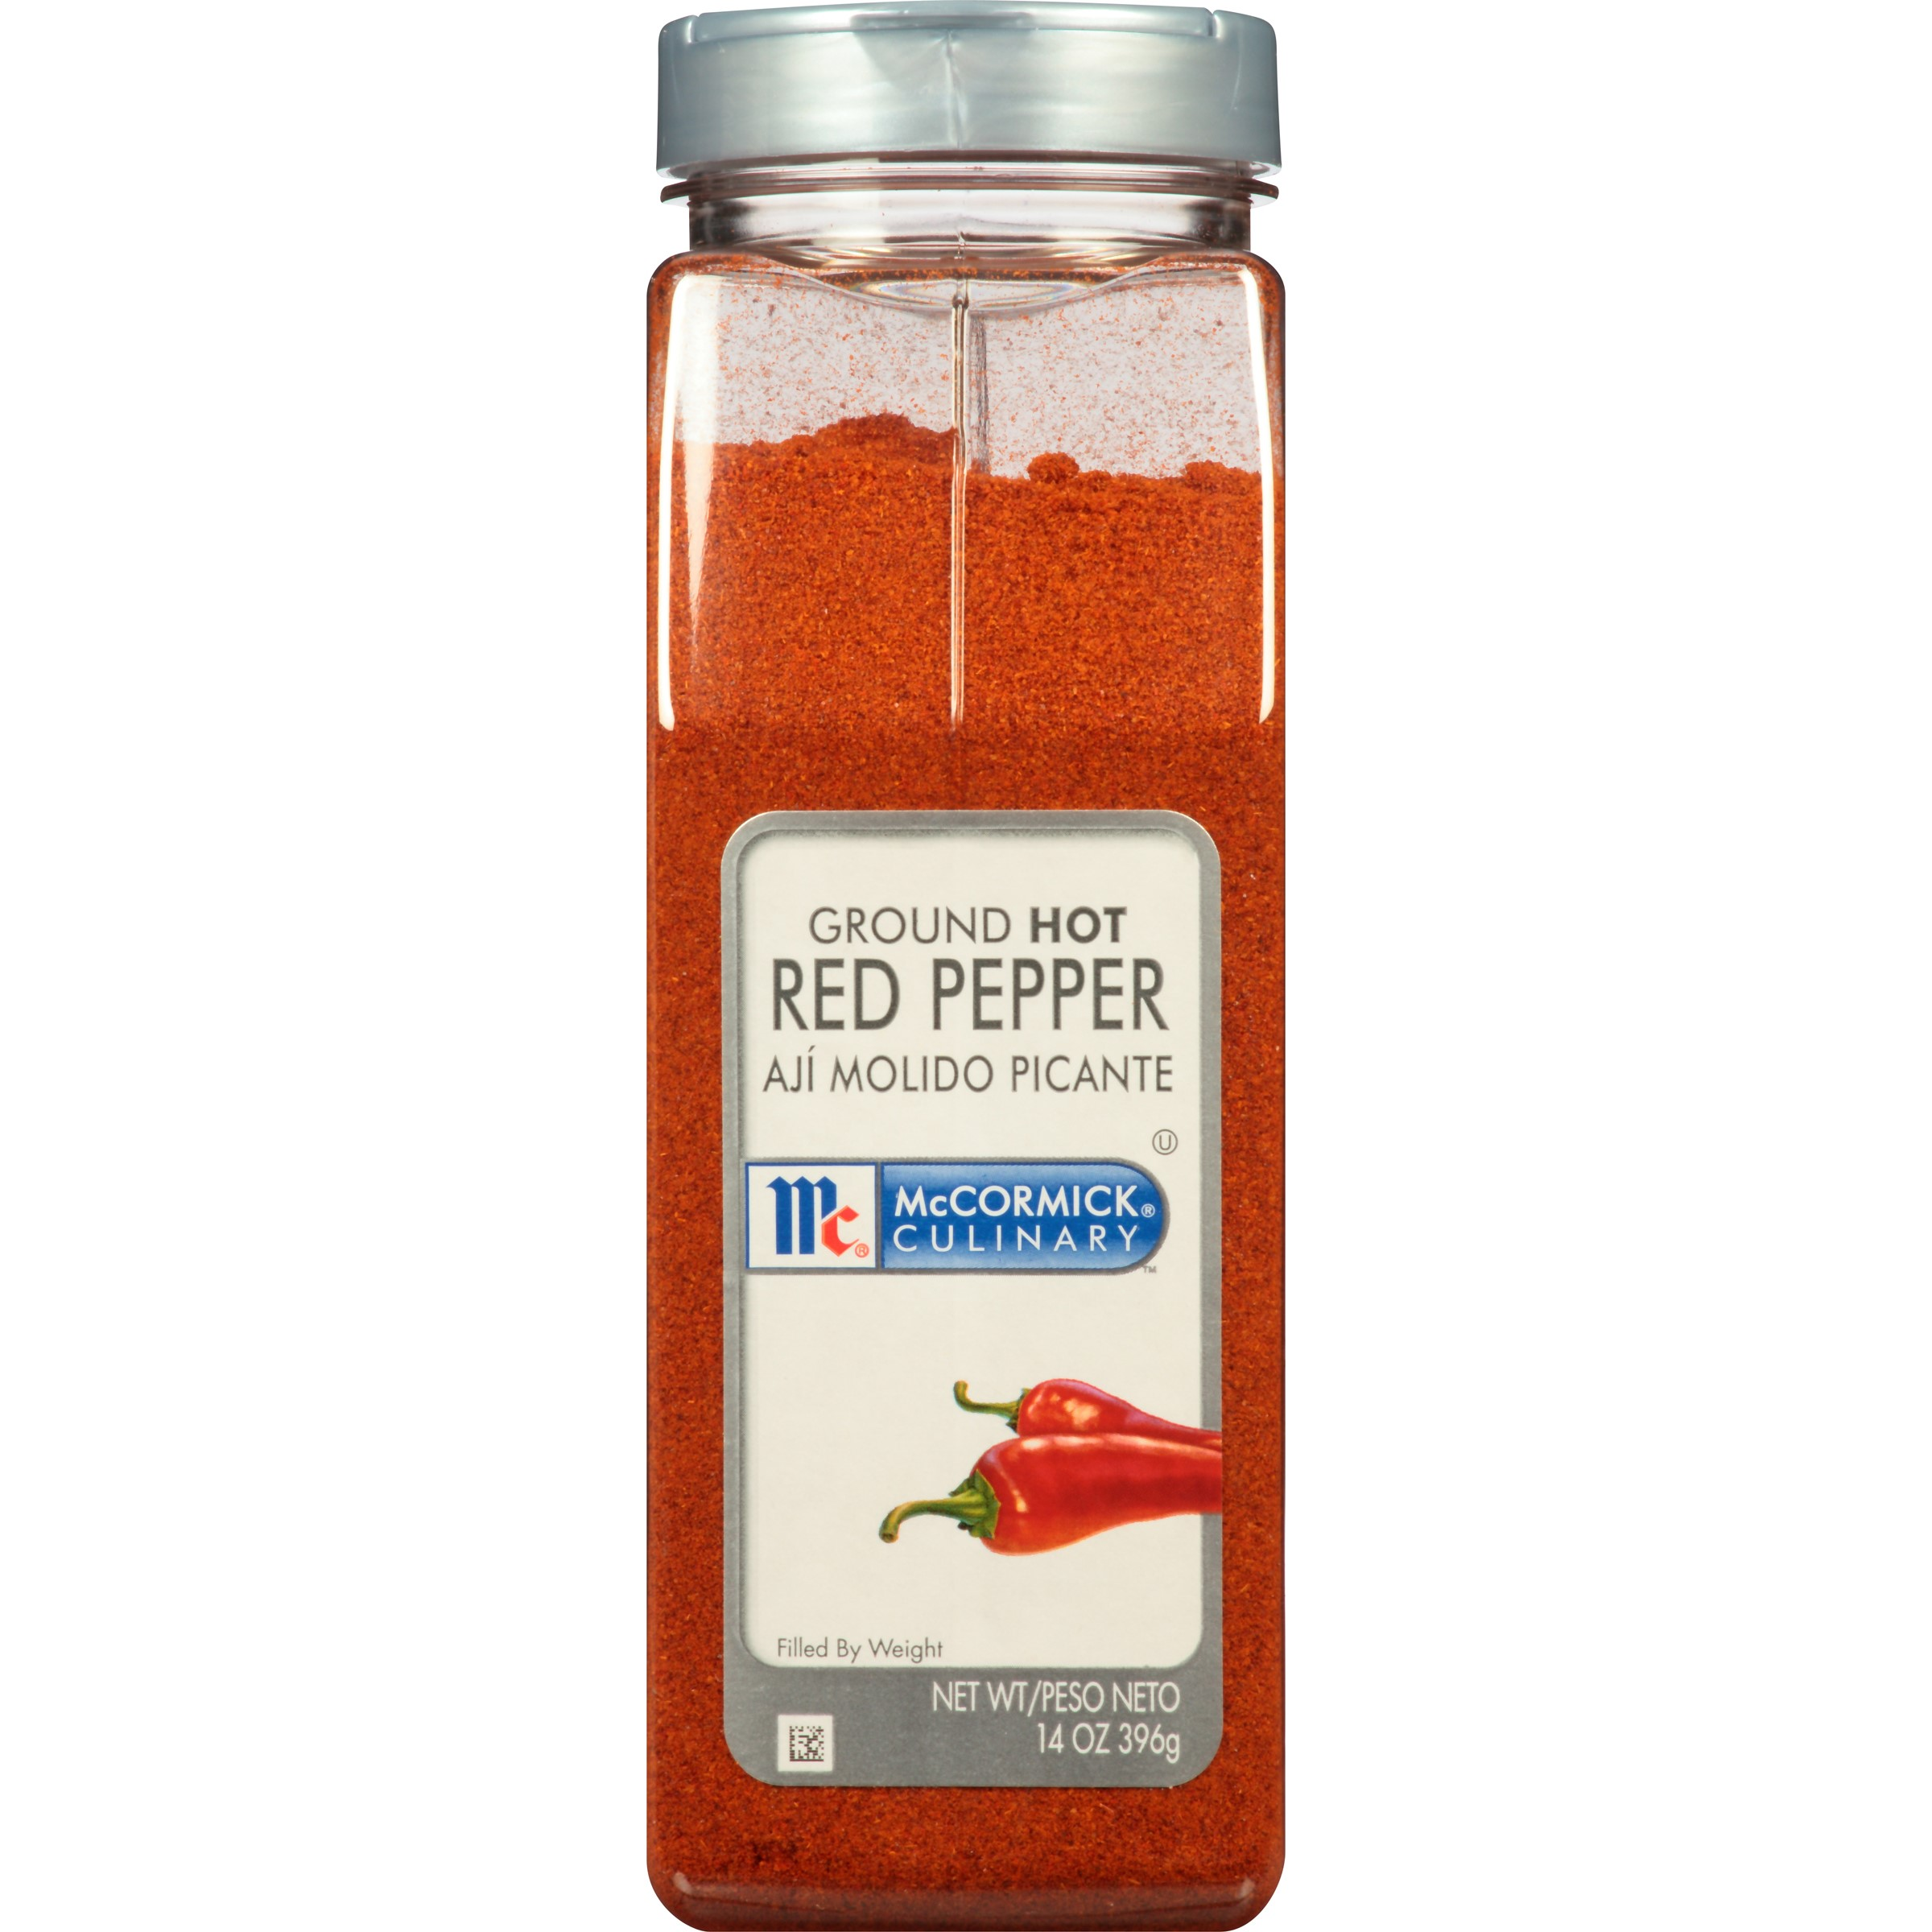 McCormick Culinary Ground Hot Red Pepper, 14 Oz